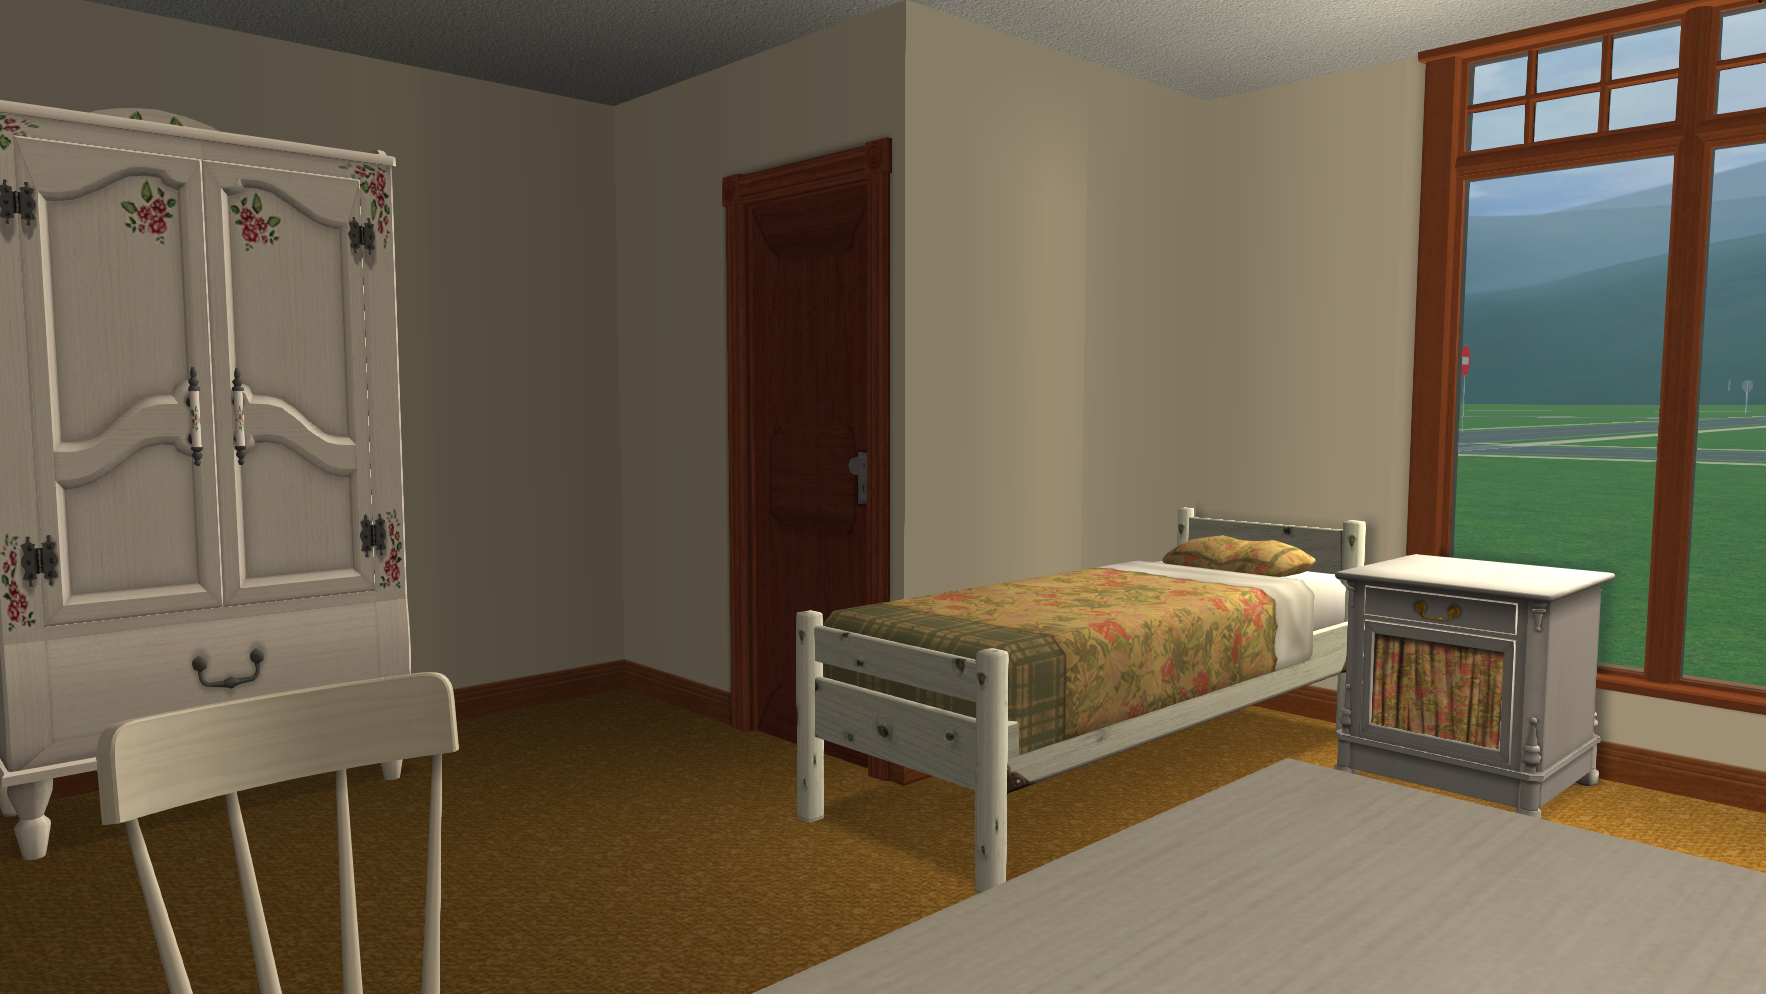 Retirement Home Bedroom